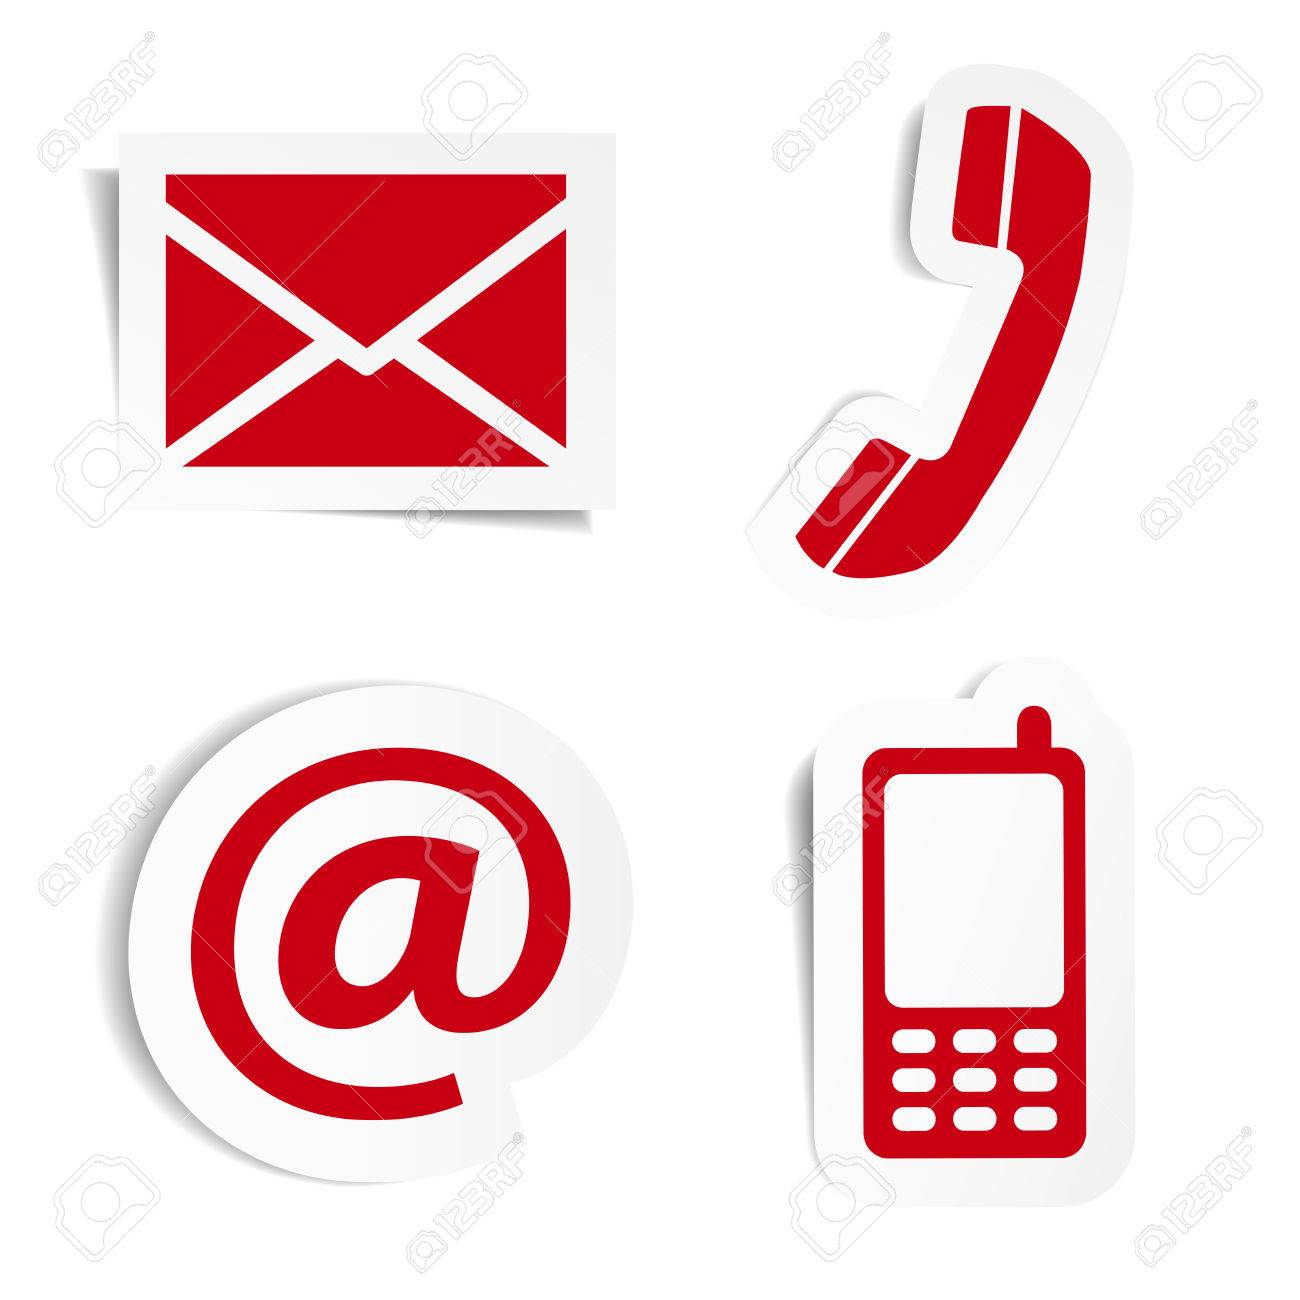 Vector website and internet contact us red icons set and design symbols on stickers with shadow vector illustration isolated on white background